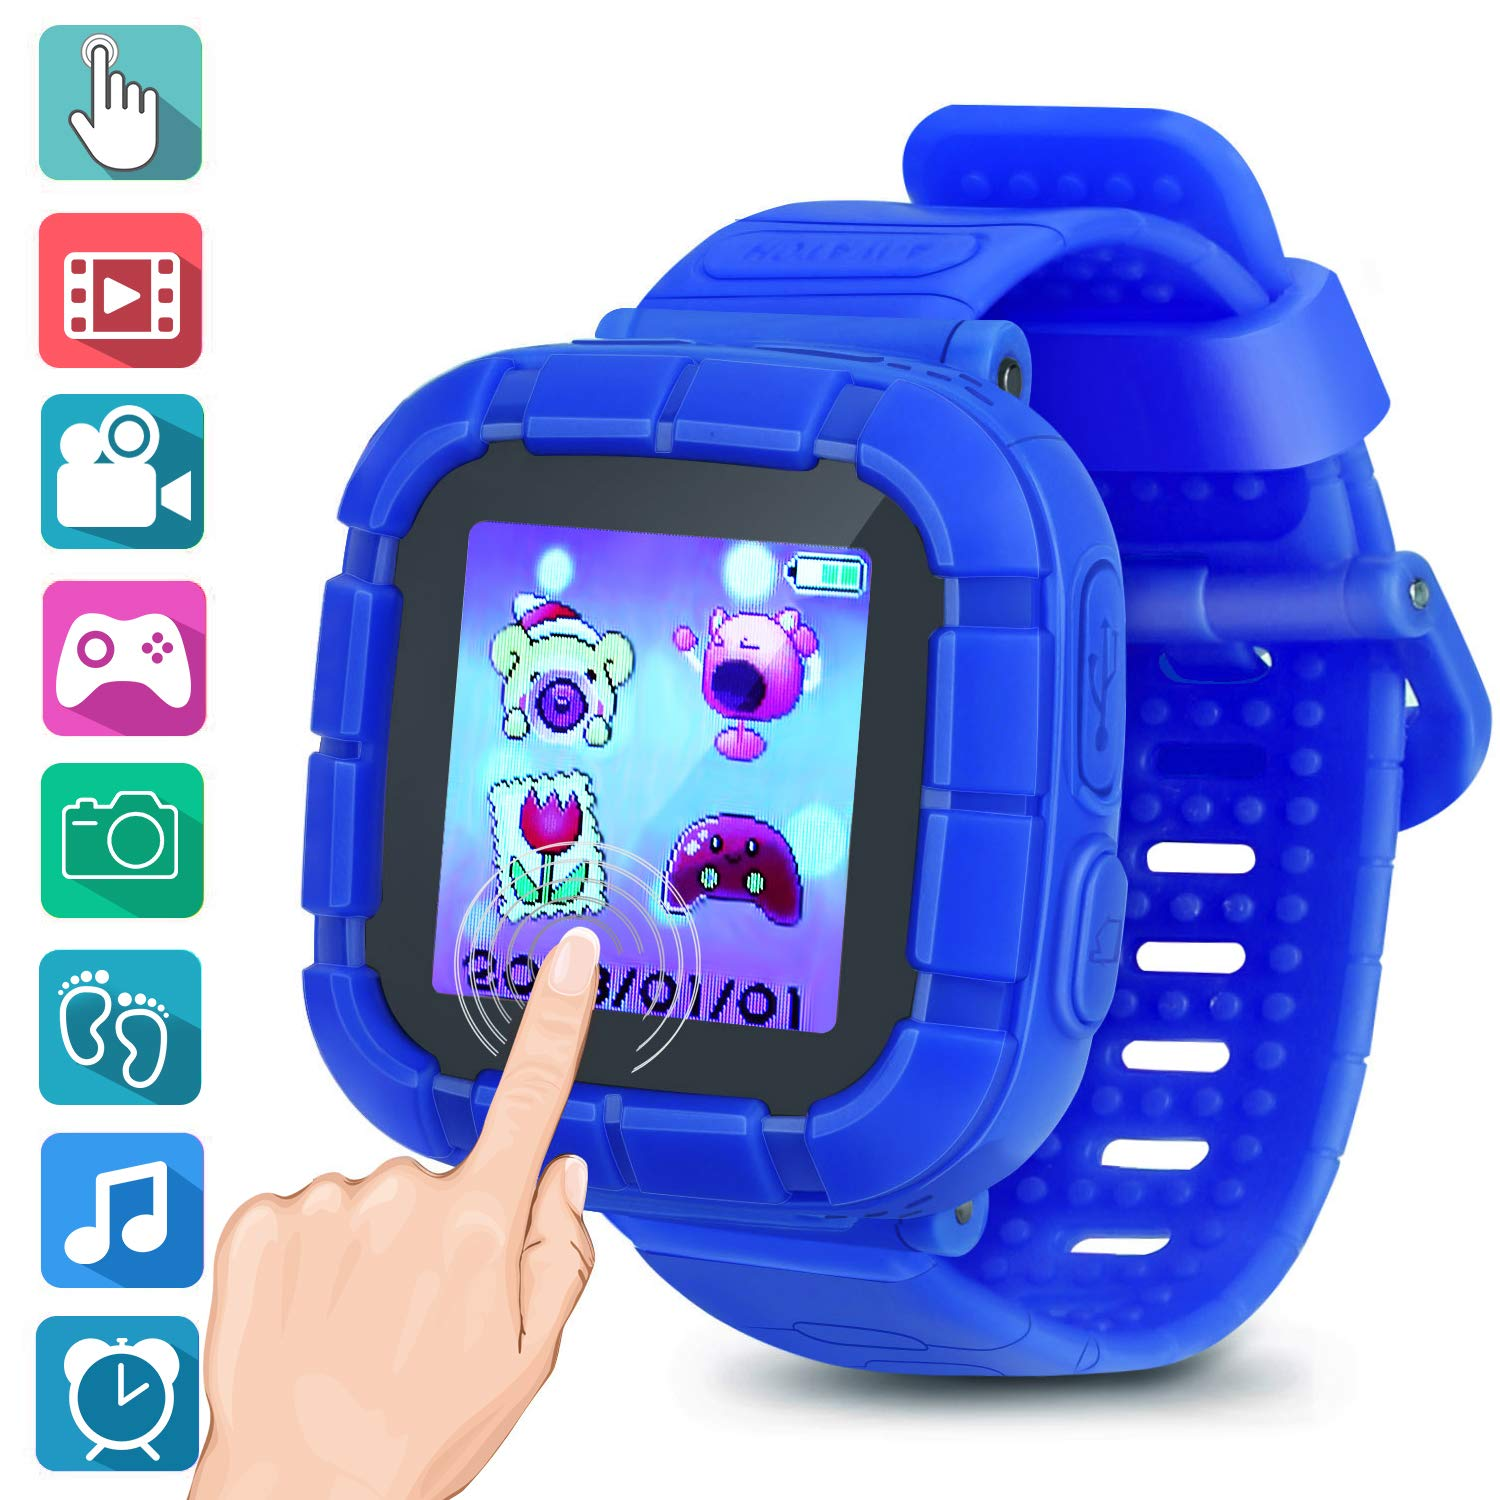 Kids smartwatch Game Watches Touch Screen Camera Video Recorder Watch for Boys Girls Children Gifts